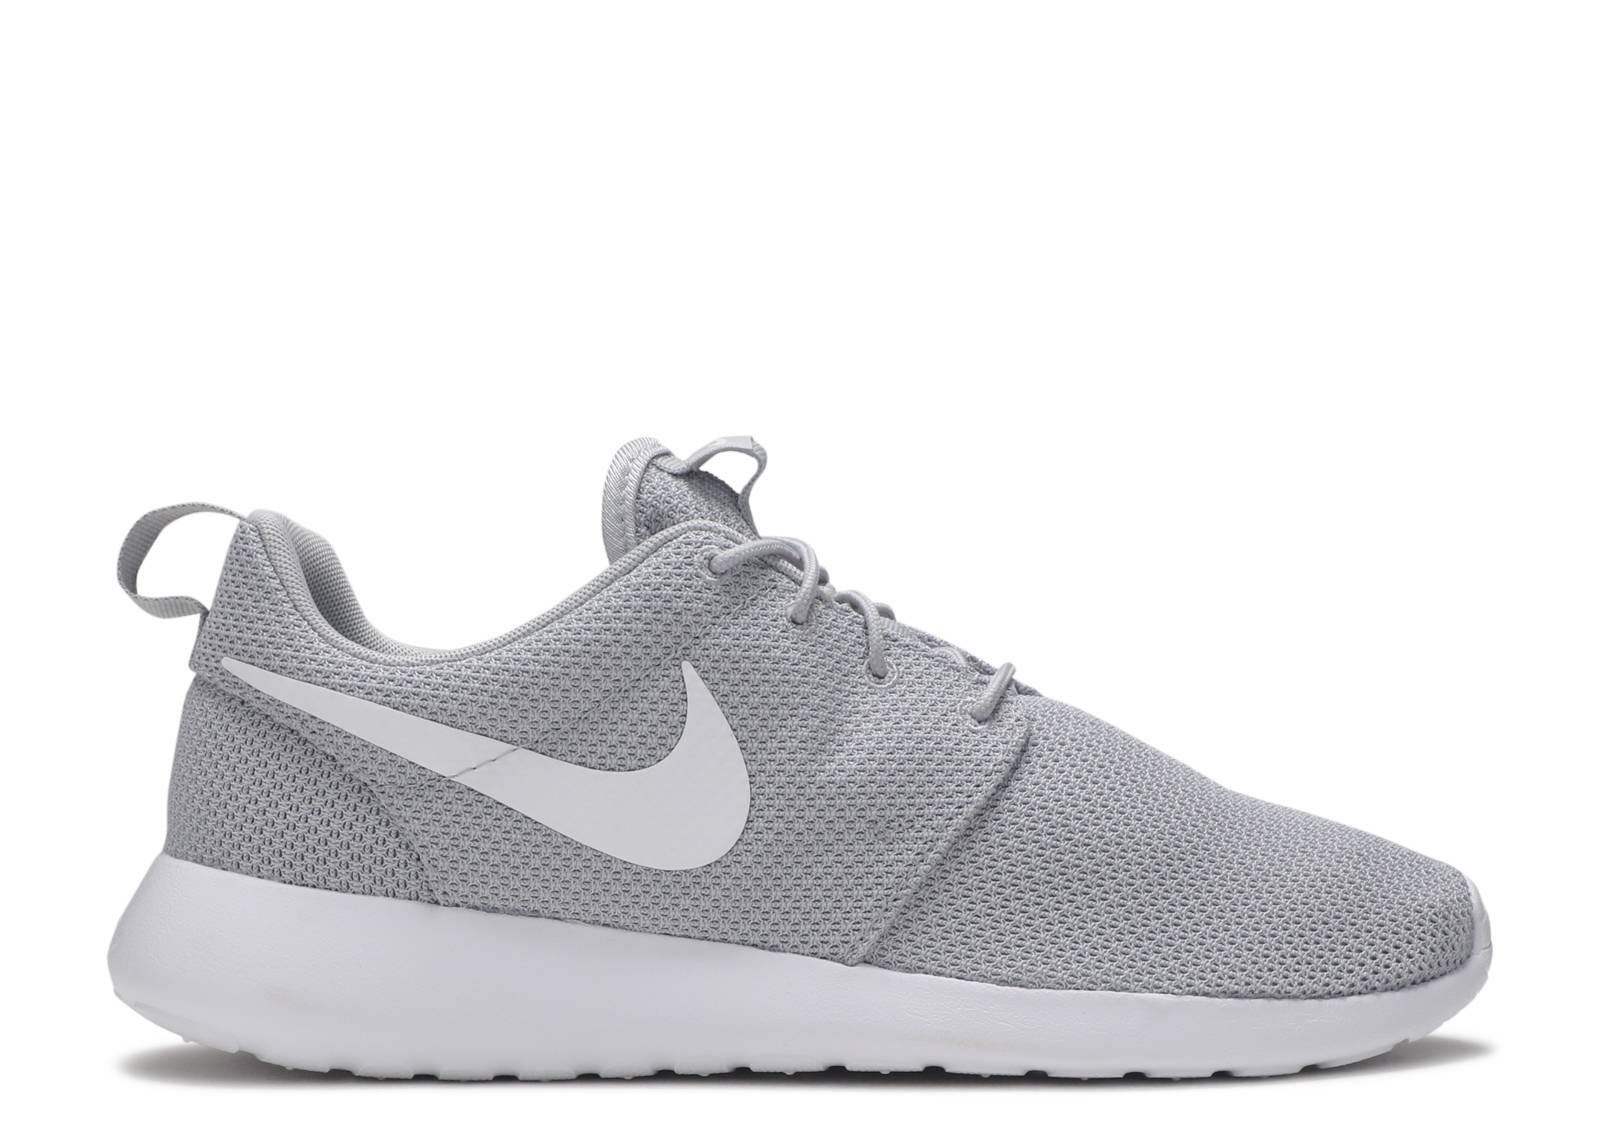 3d07e1b8751 Roshe One - Nike - 511881 023 - wolf grey white